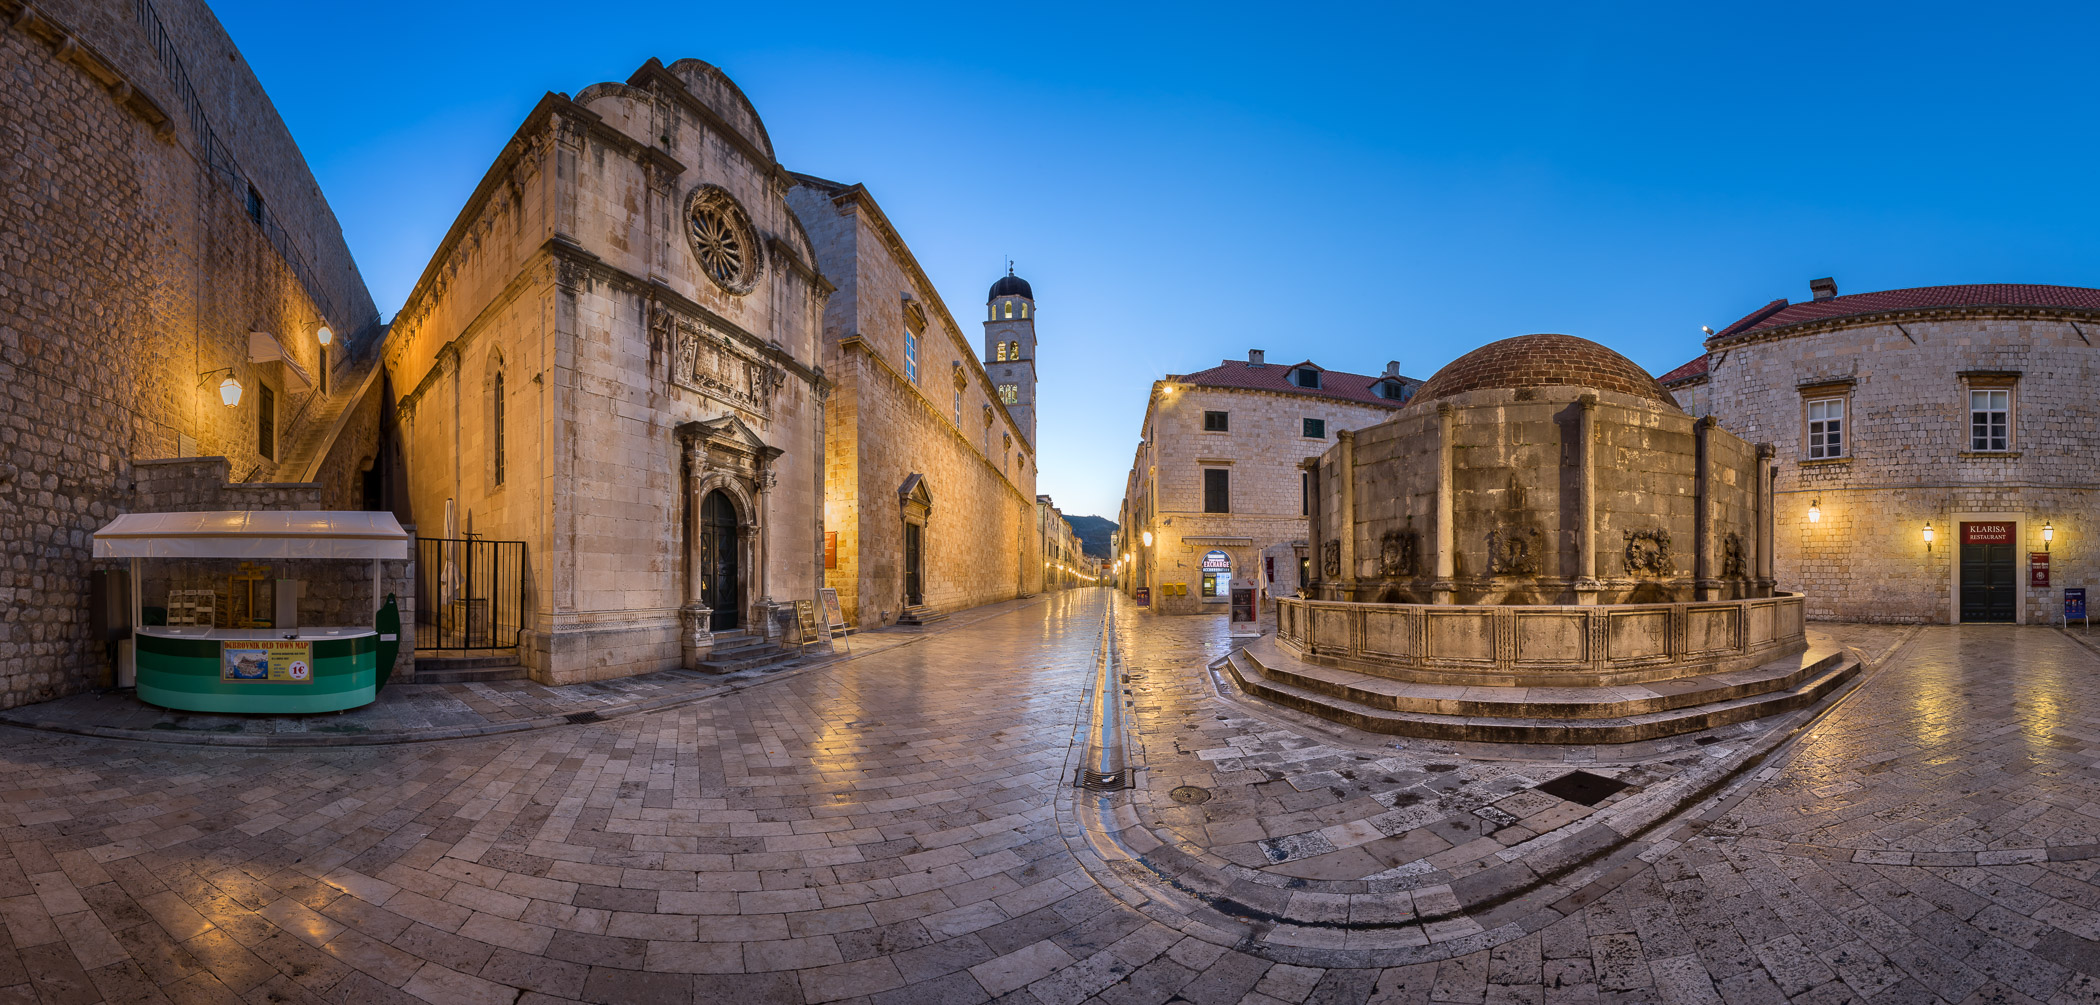 Panorama of Great Onofrio Fountain and Holy Saviour Church in the Evening, Dubrovnik